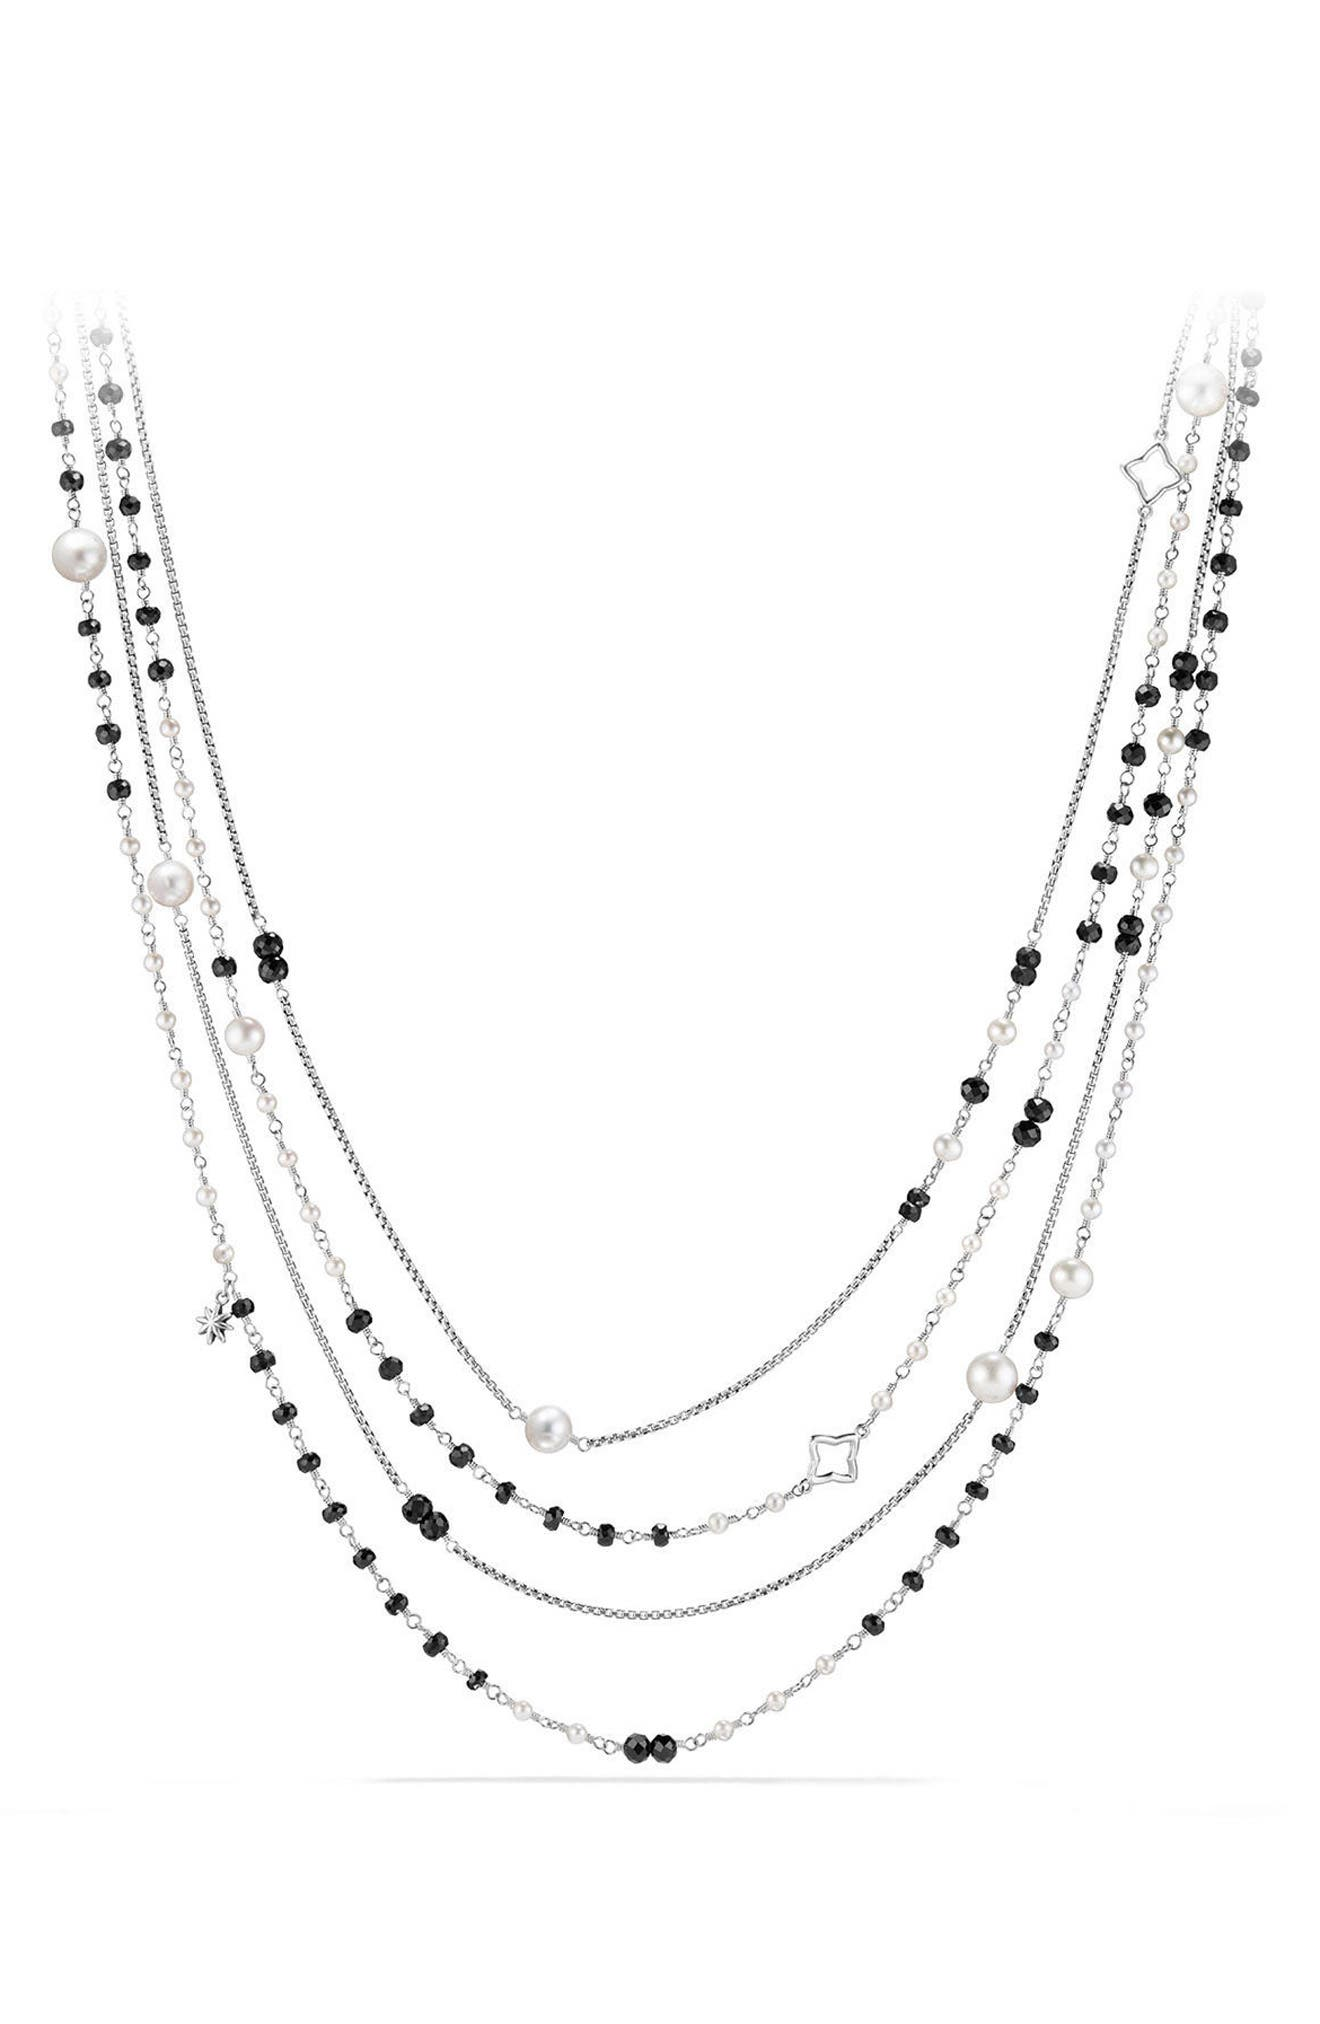 Solari Two Row Pearl Chain Necklace,                             Main thumbnail 1, color,                             PEARL/ BLACK SPINEL